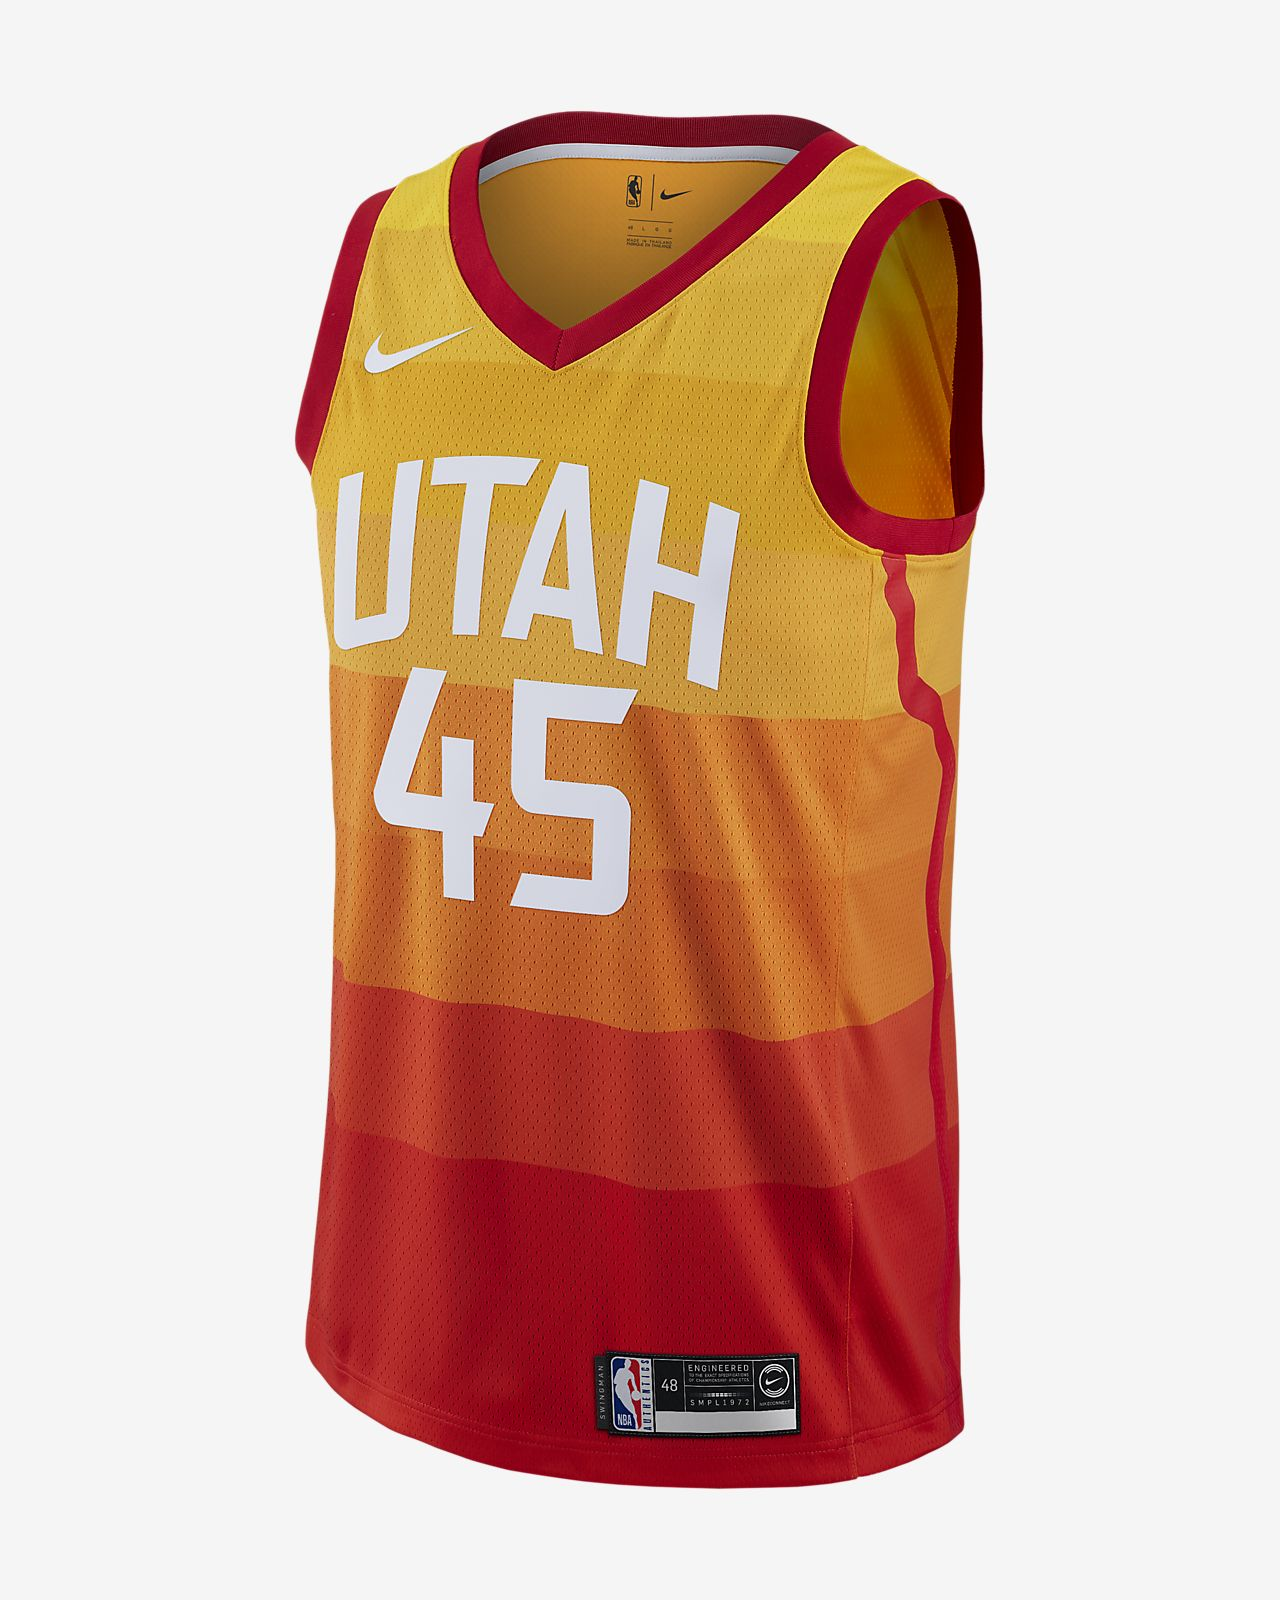 reputable site 1330d f738f Donovan Mitchell City Edition Swingman (Utah Jazz) Men's Nike NBA Connected  Jersey